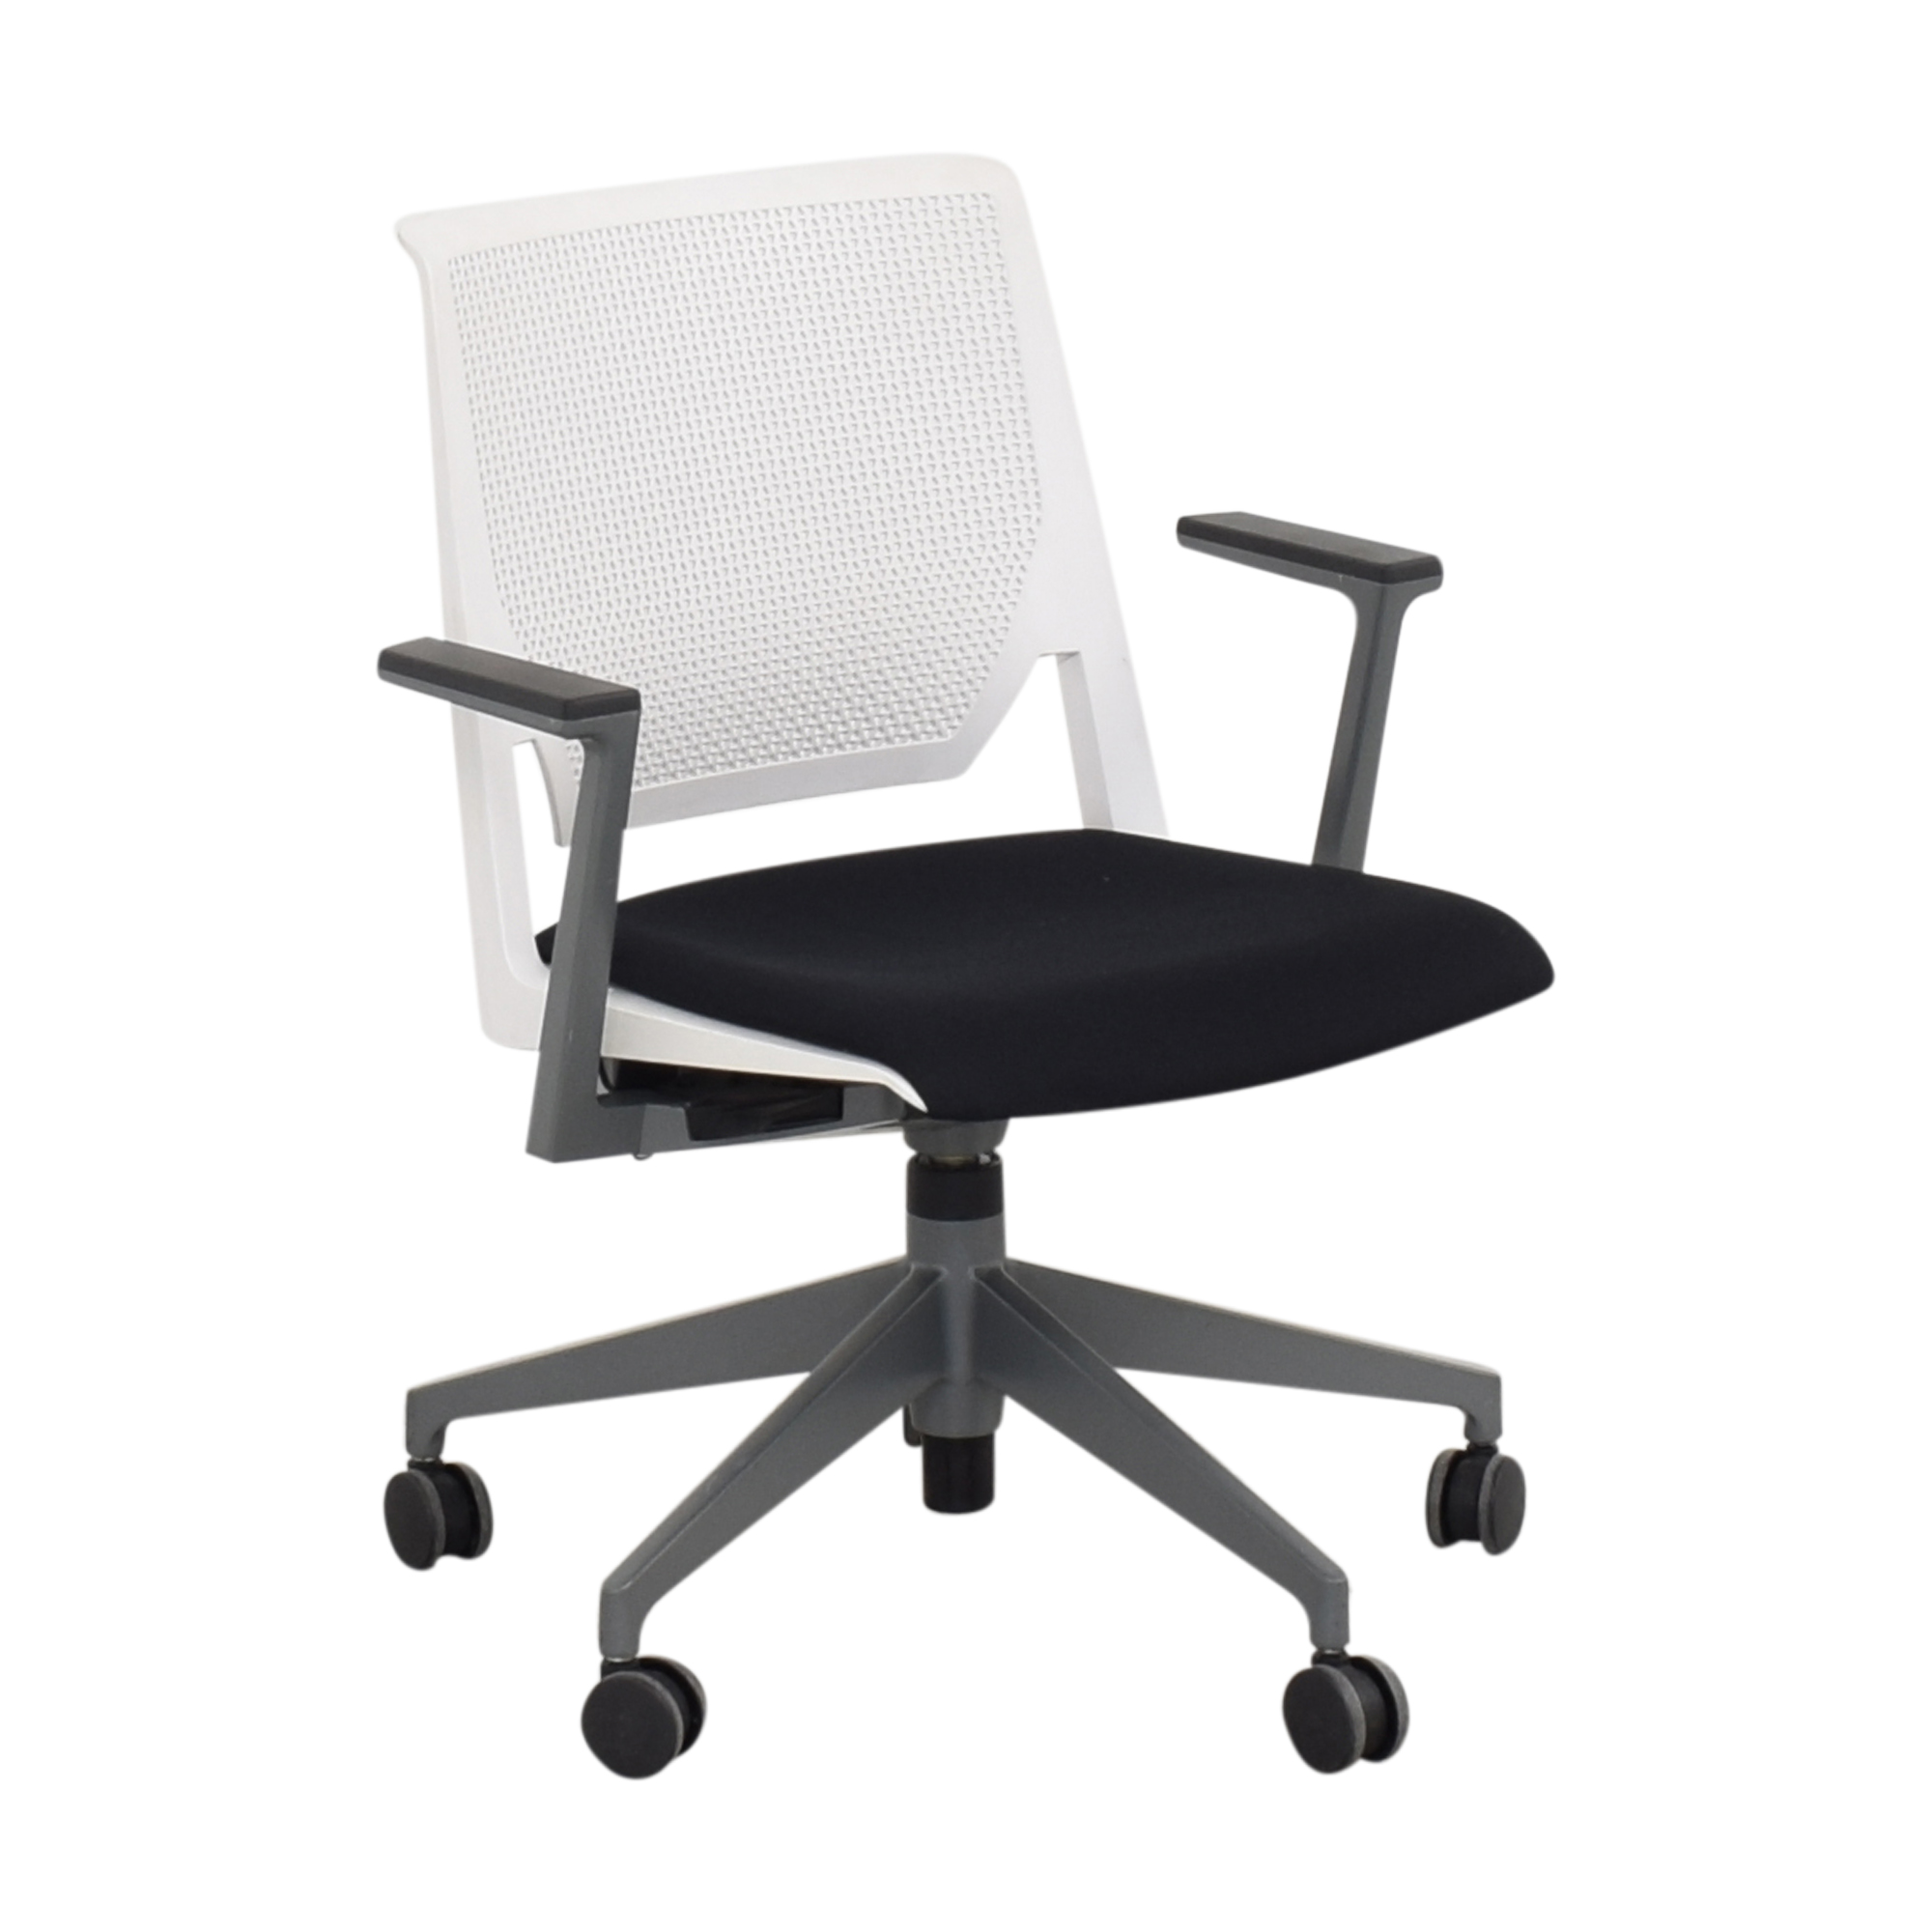 Haworth Haworth Very Conference Chair with Arms white and black